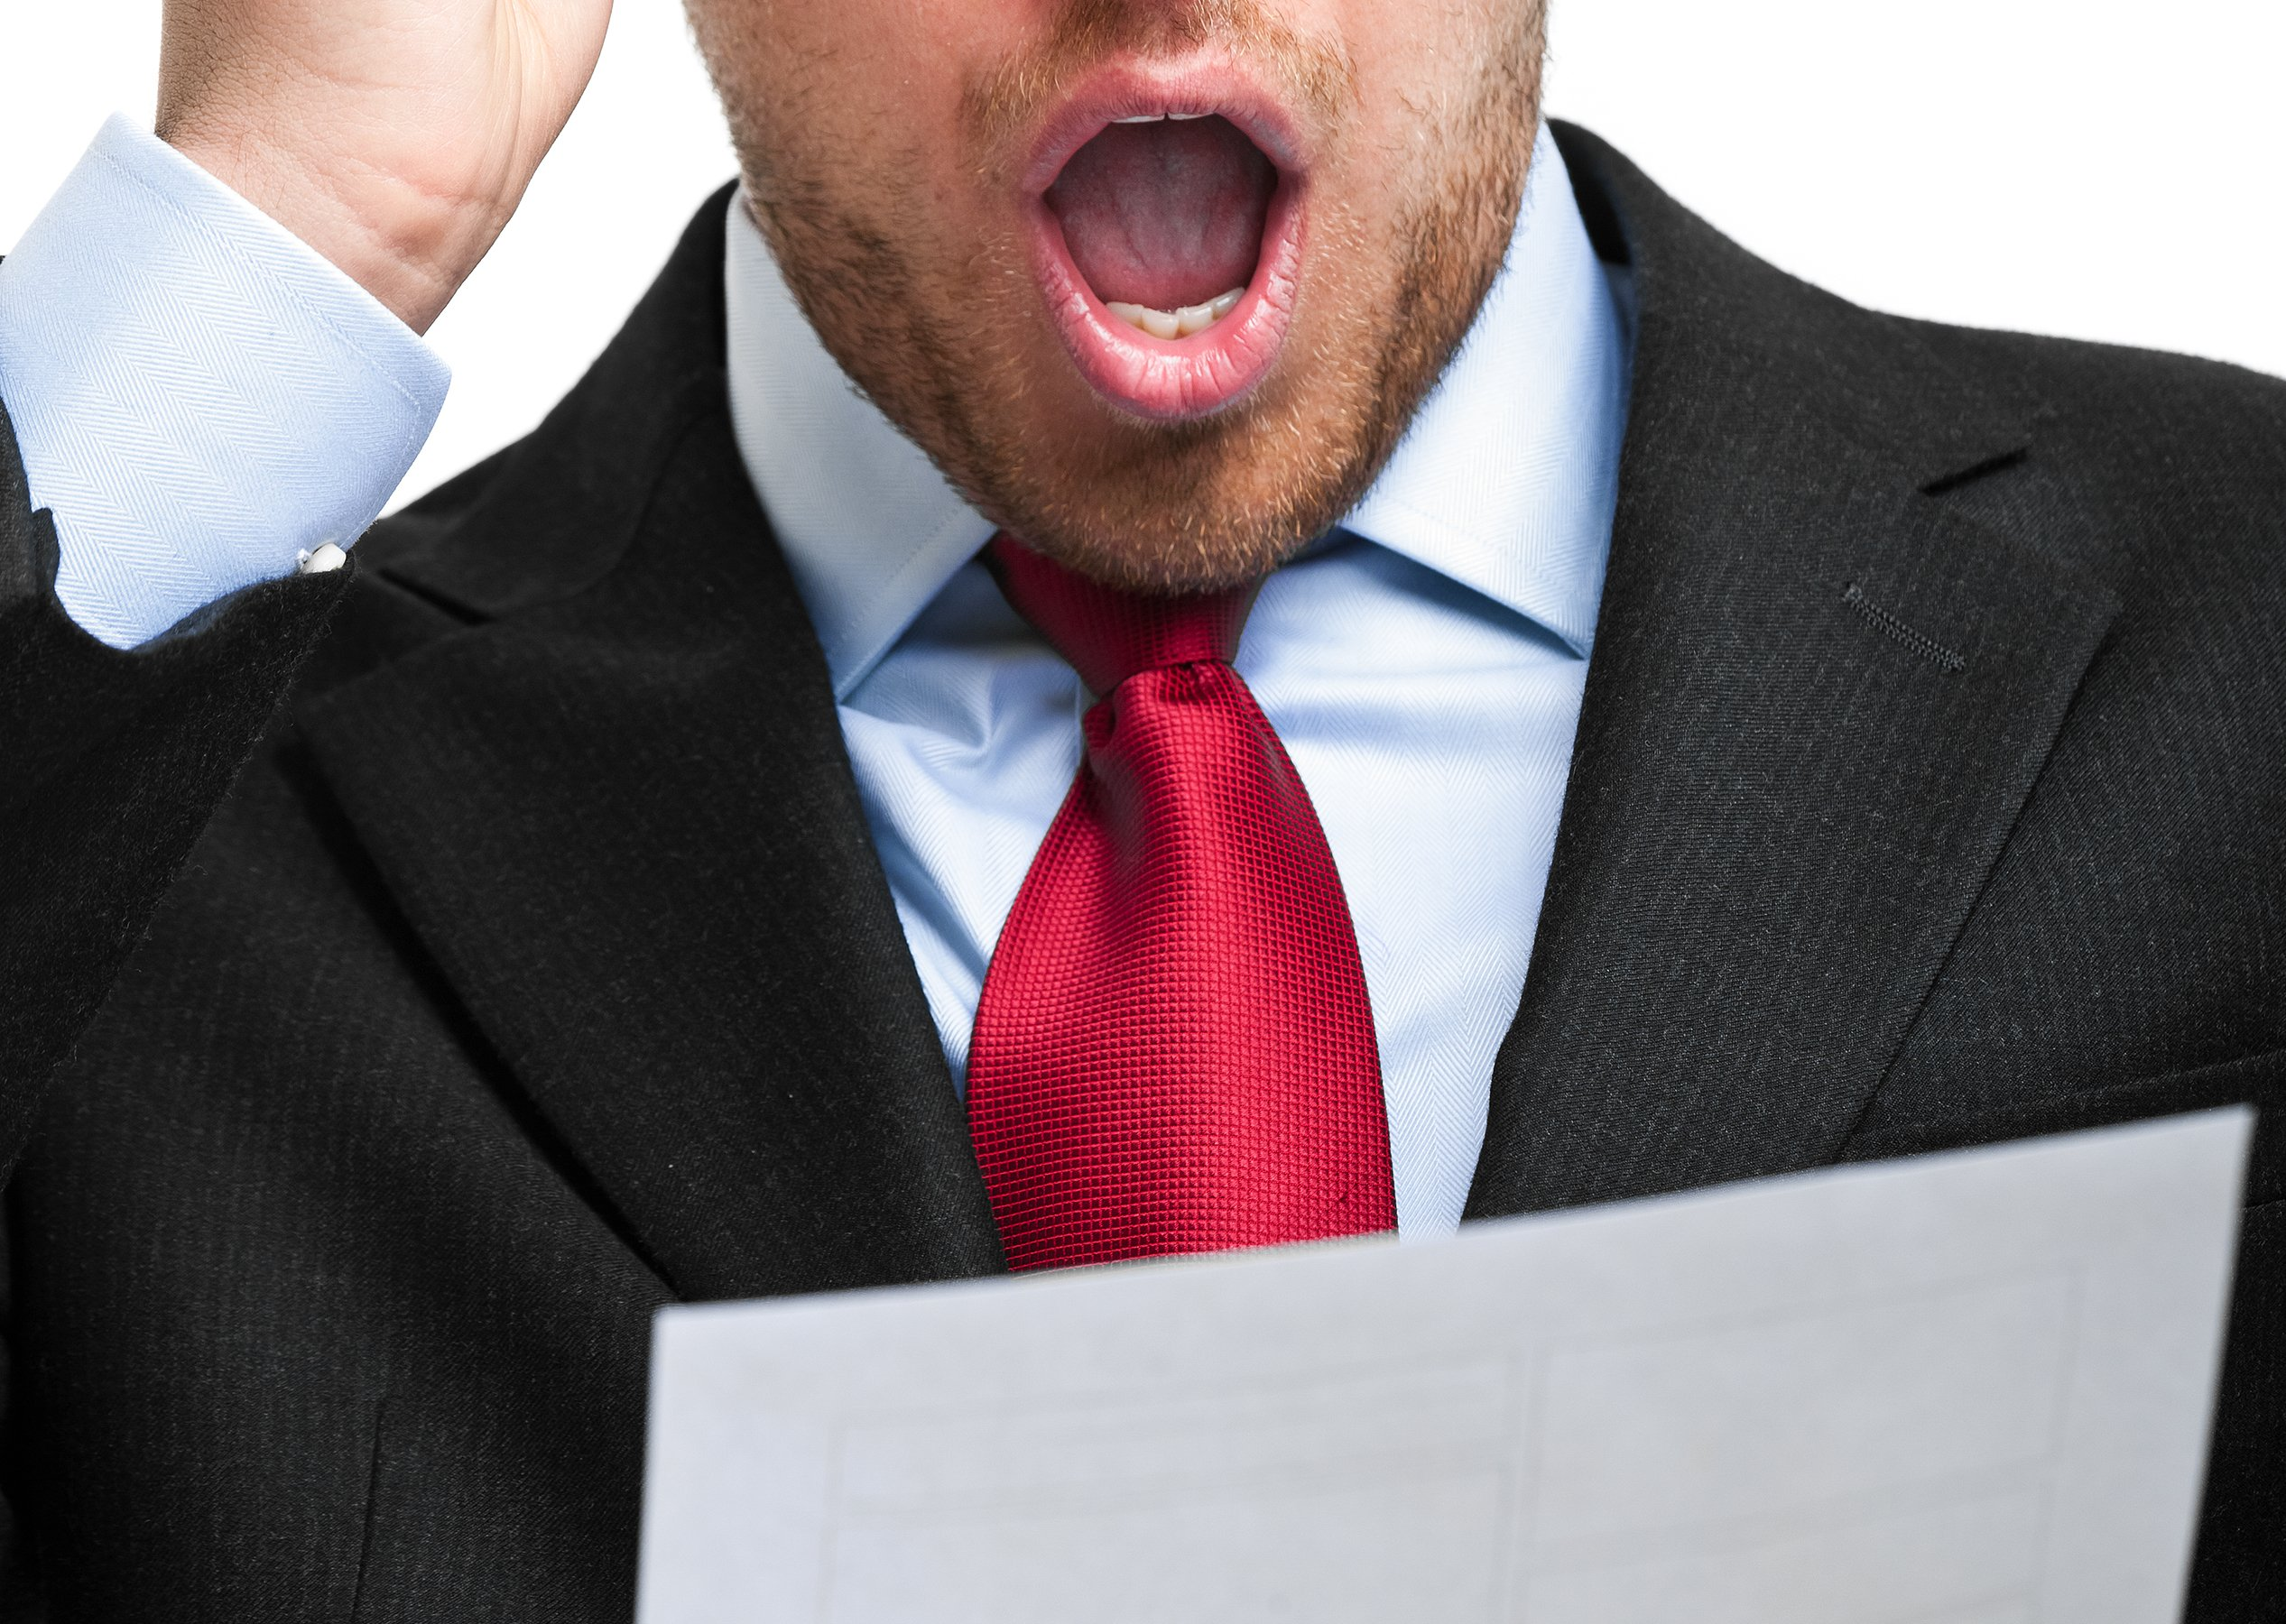 A man with a document shows surprise at reading Unexpected Employee Engagement Survey Results